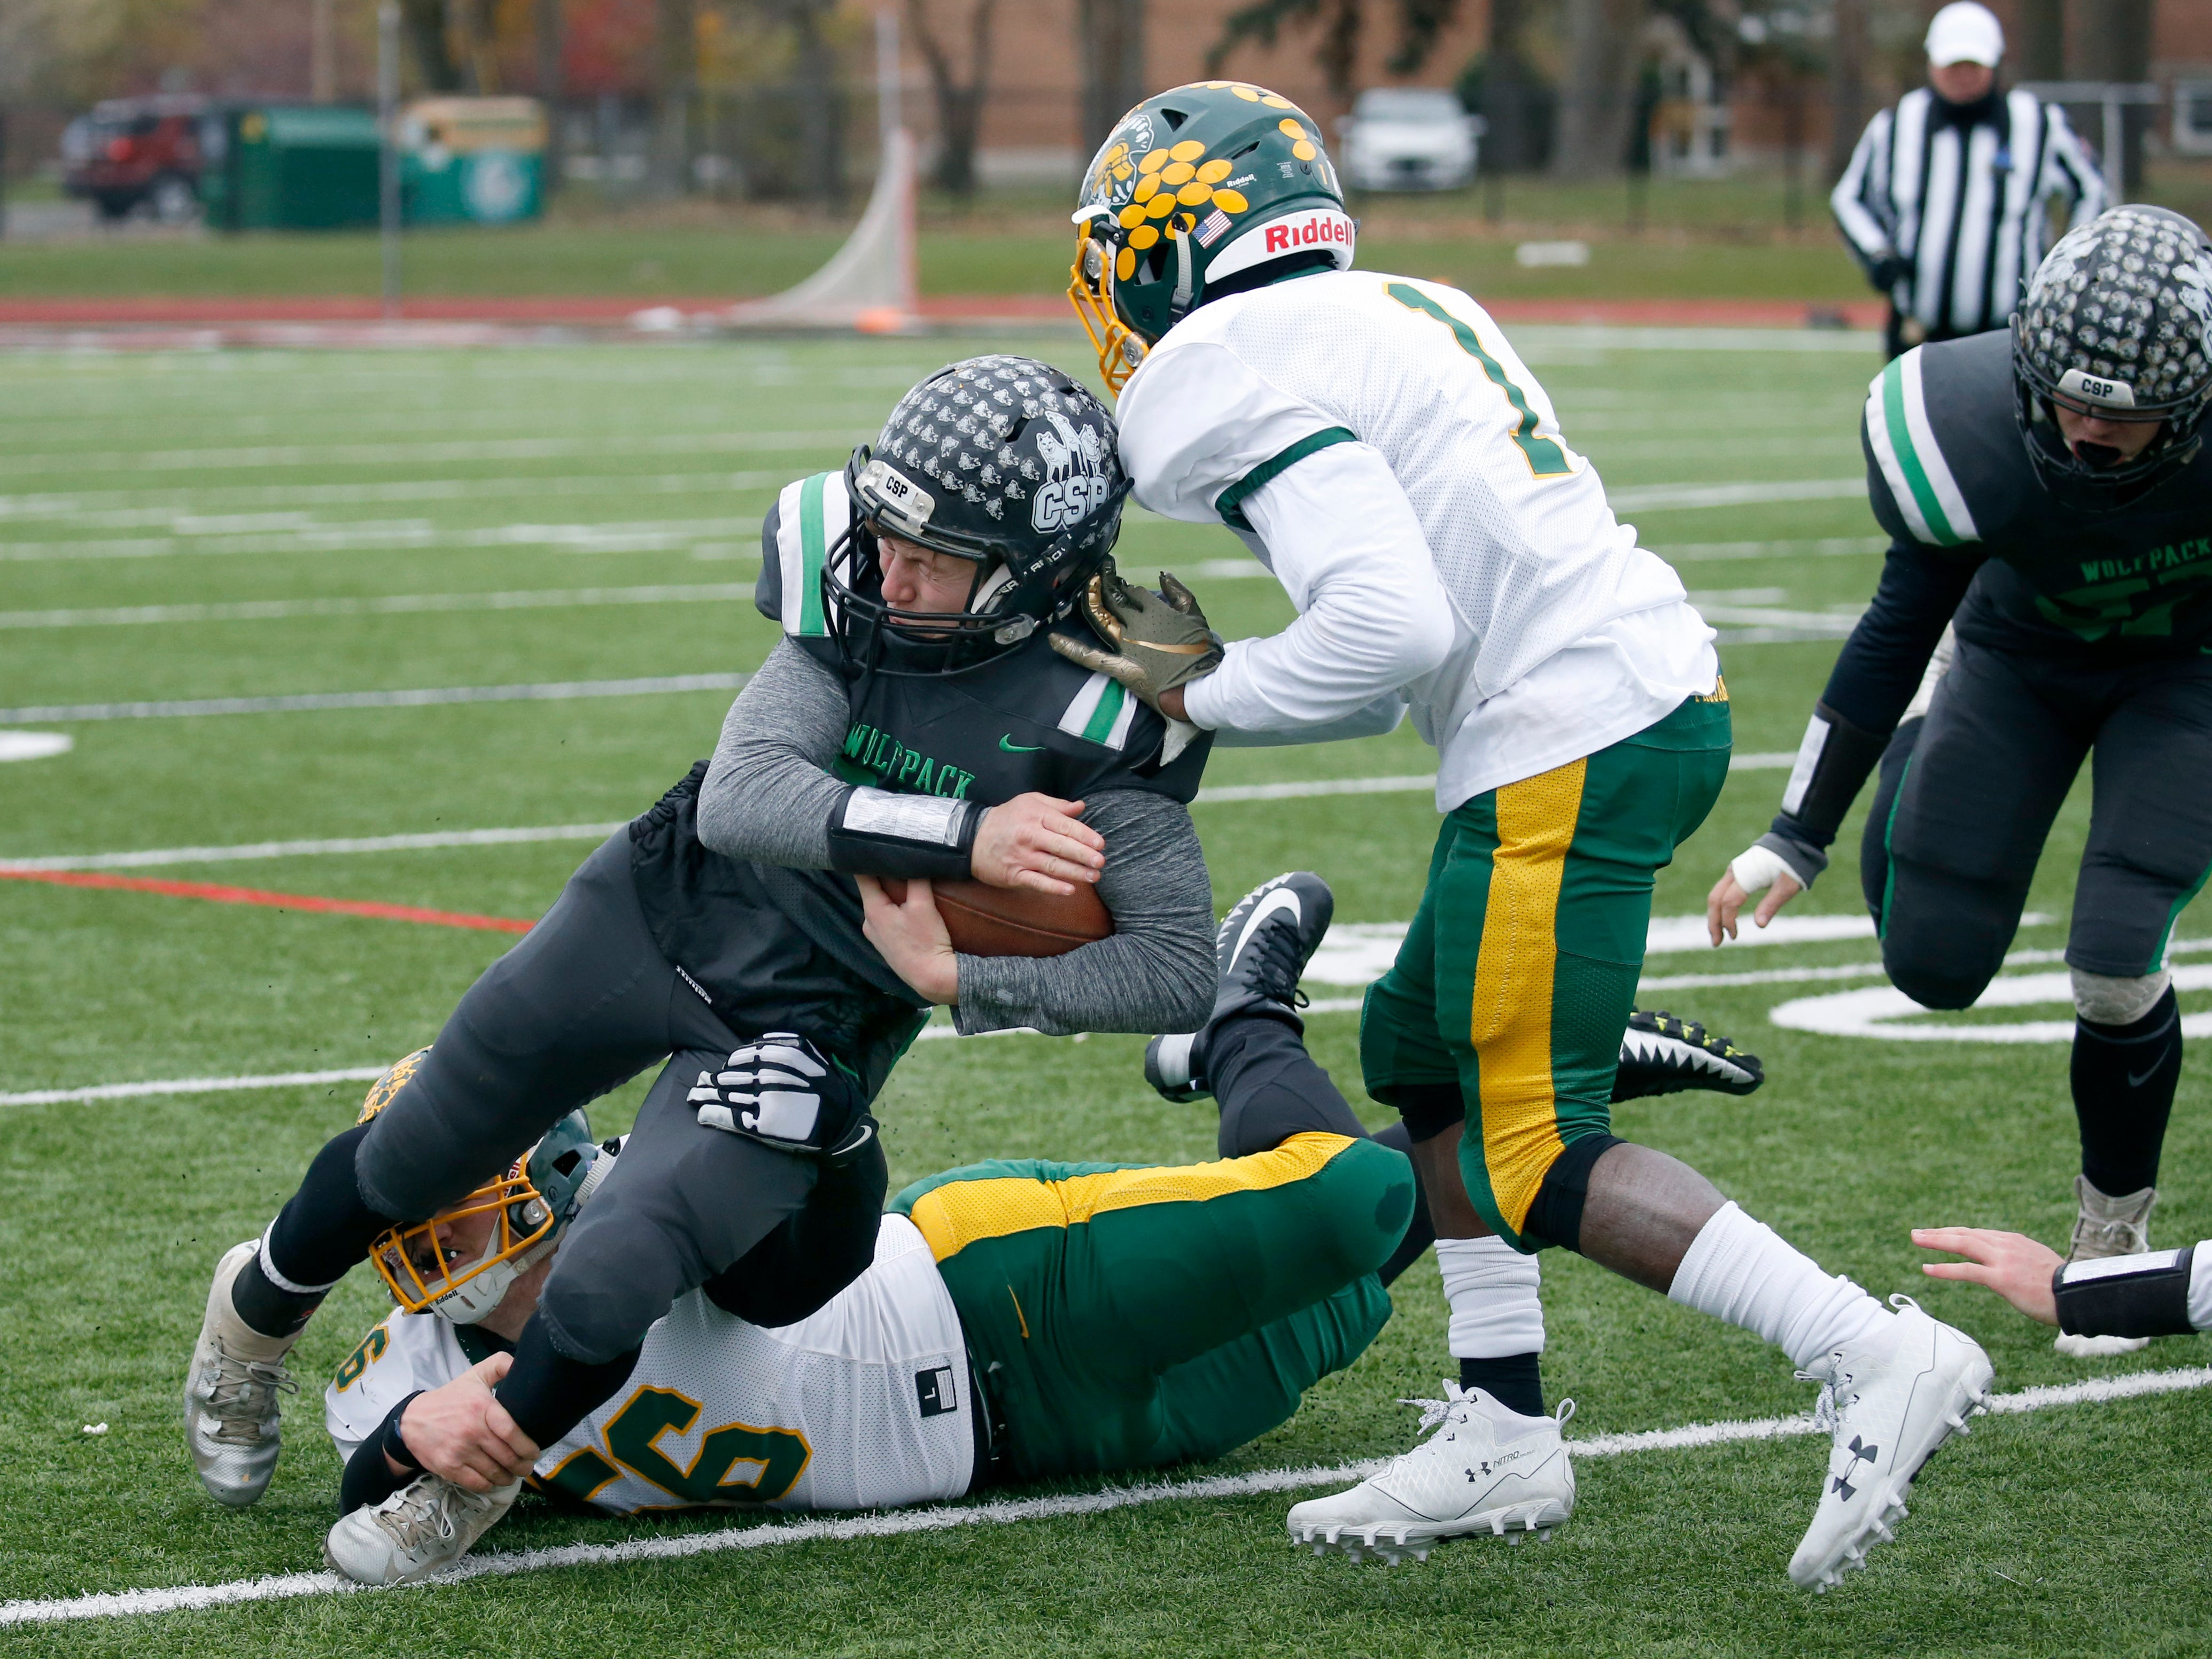 Alexander's Jake Jasen and Chris McClinic tackle Clymer-Sherman-Panama's Derek Ecklund in the second quarter at Clarence High School.